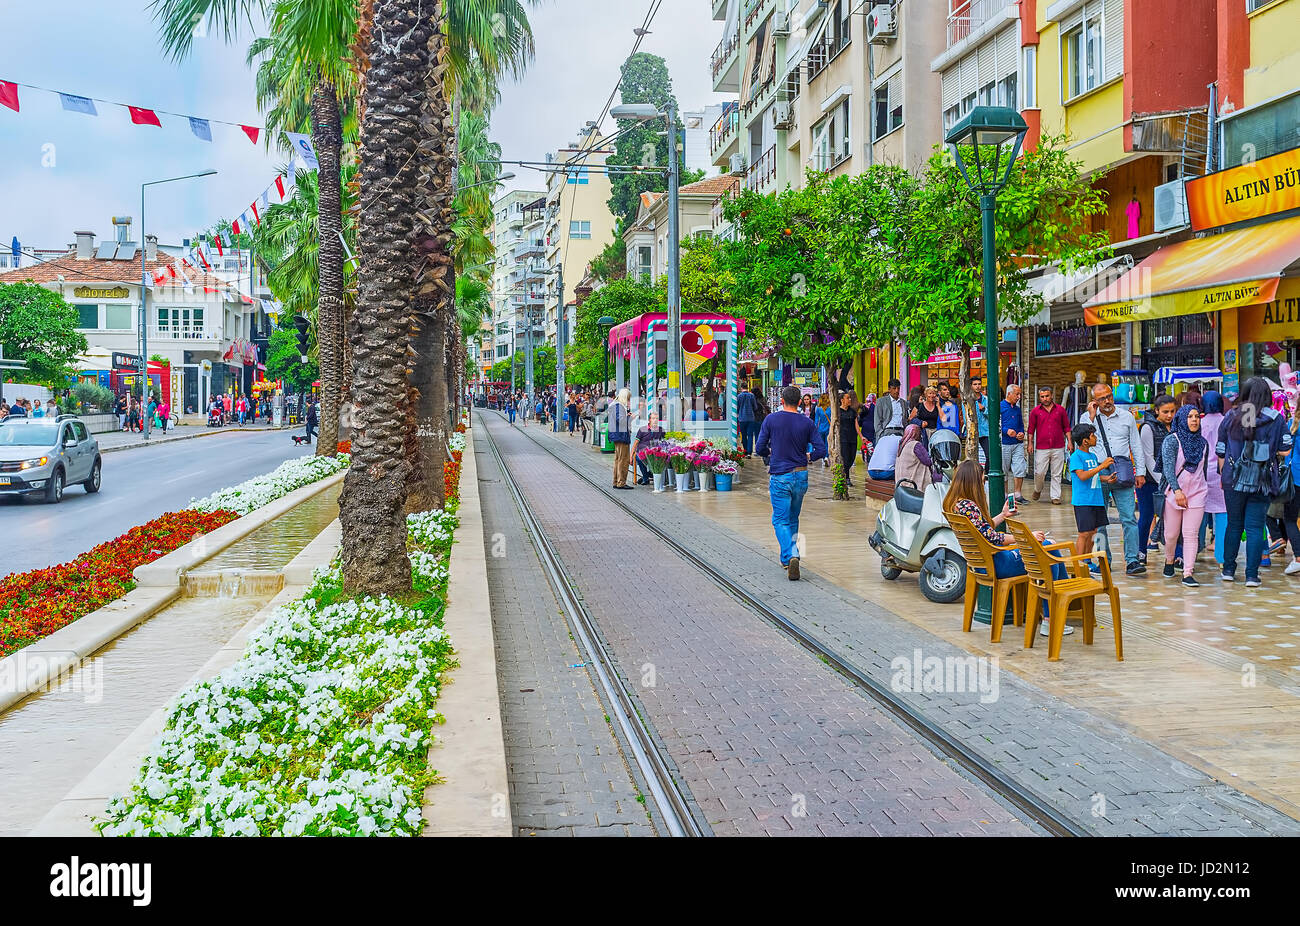 ANTALYA TURKEY MAY The Tram Line In Ataturk Avenue - Where is turkey located